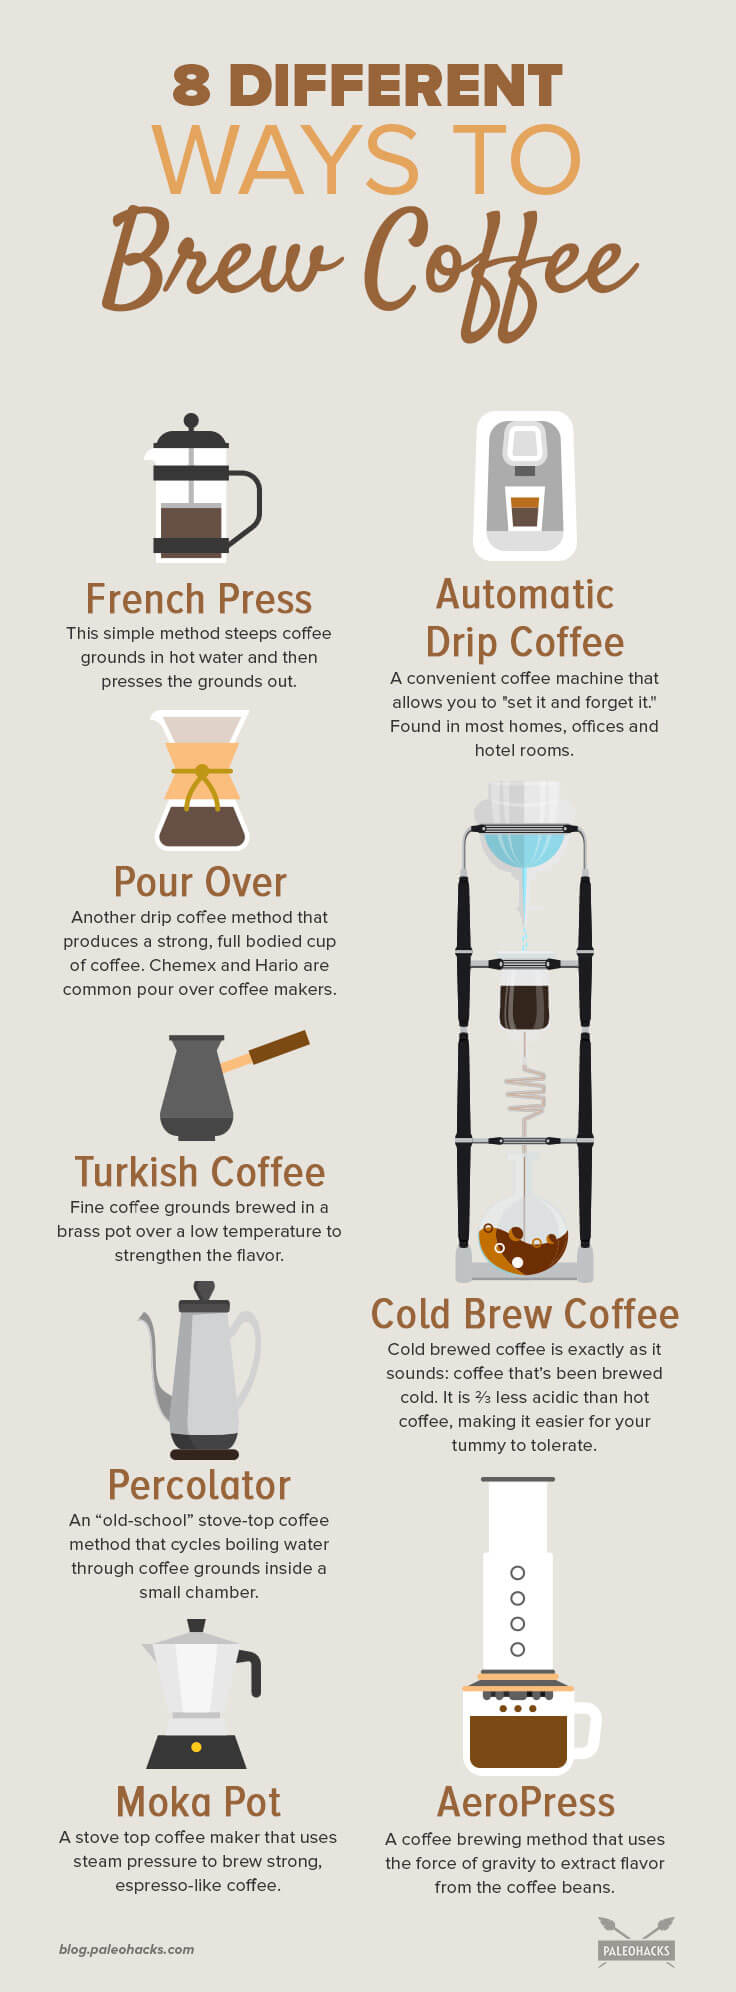 What is brewed coffee